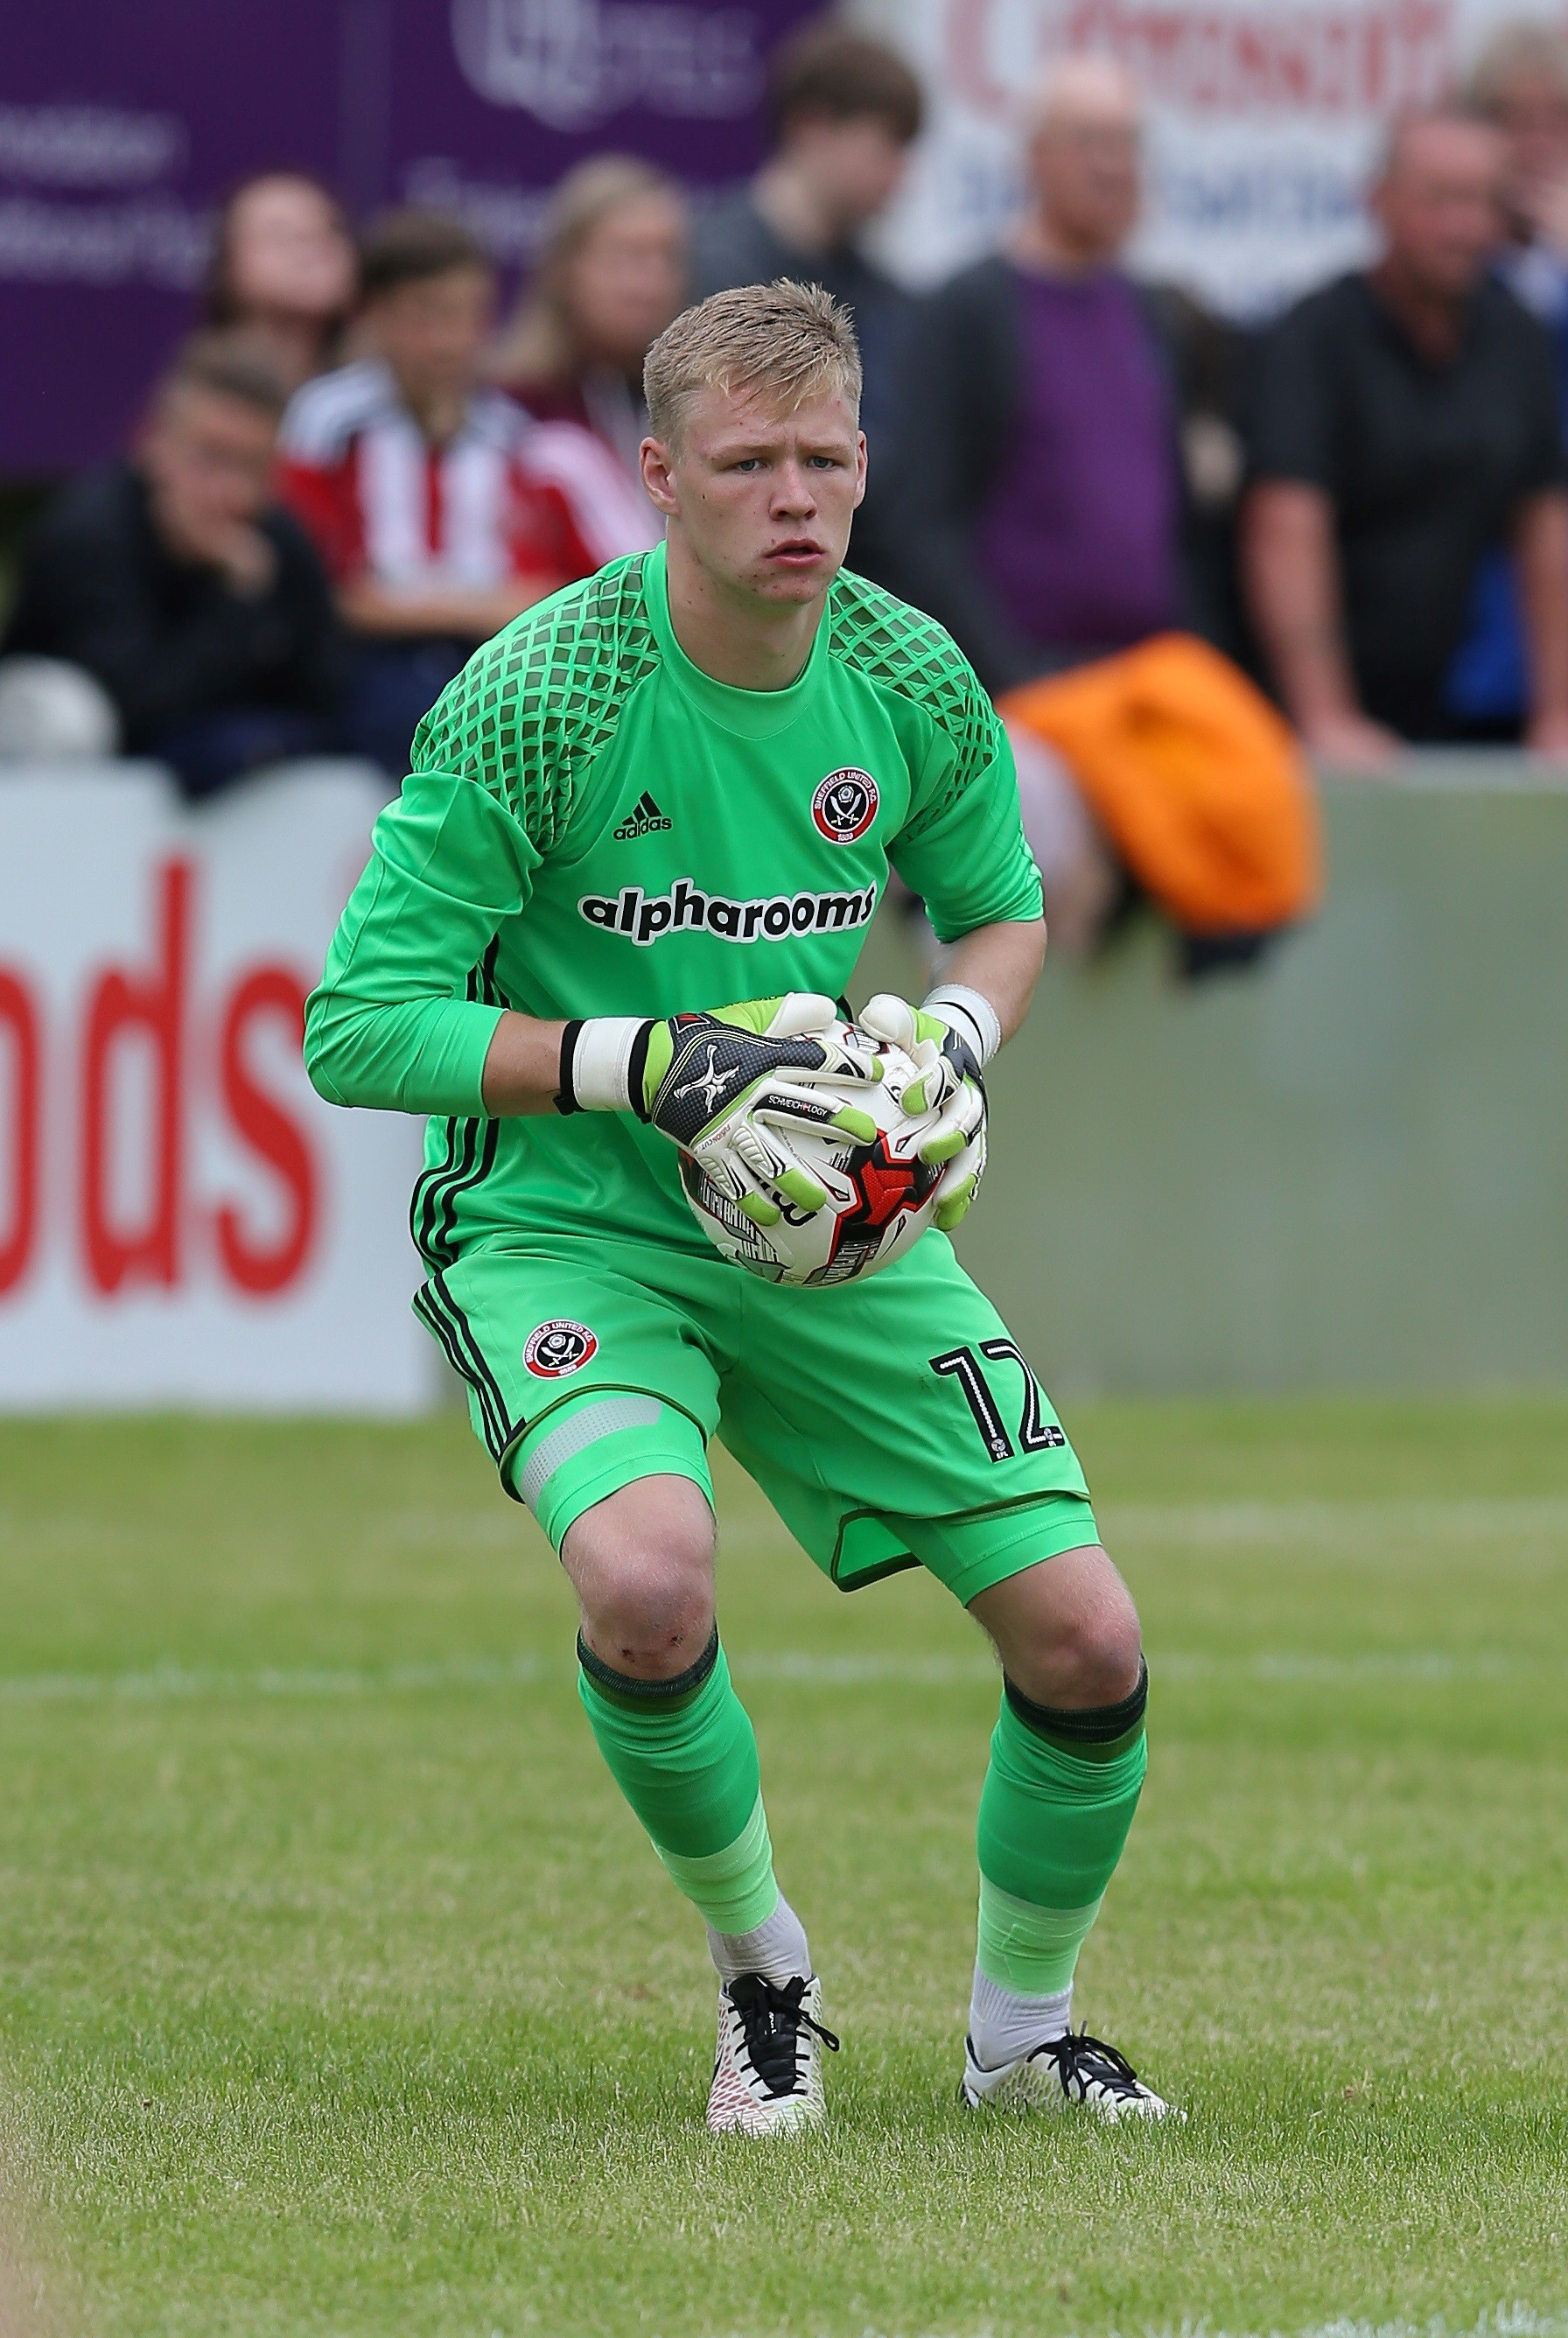 ON THE WAY UP: Goalkeeper Aaron Ramsdale (Picture: Sheffield United FC)